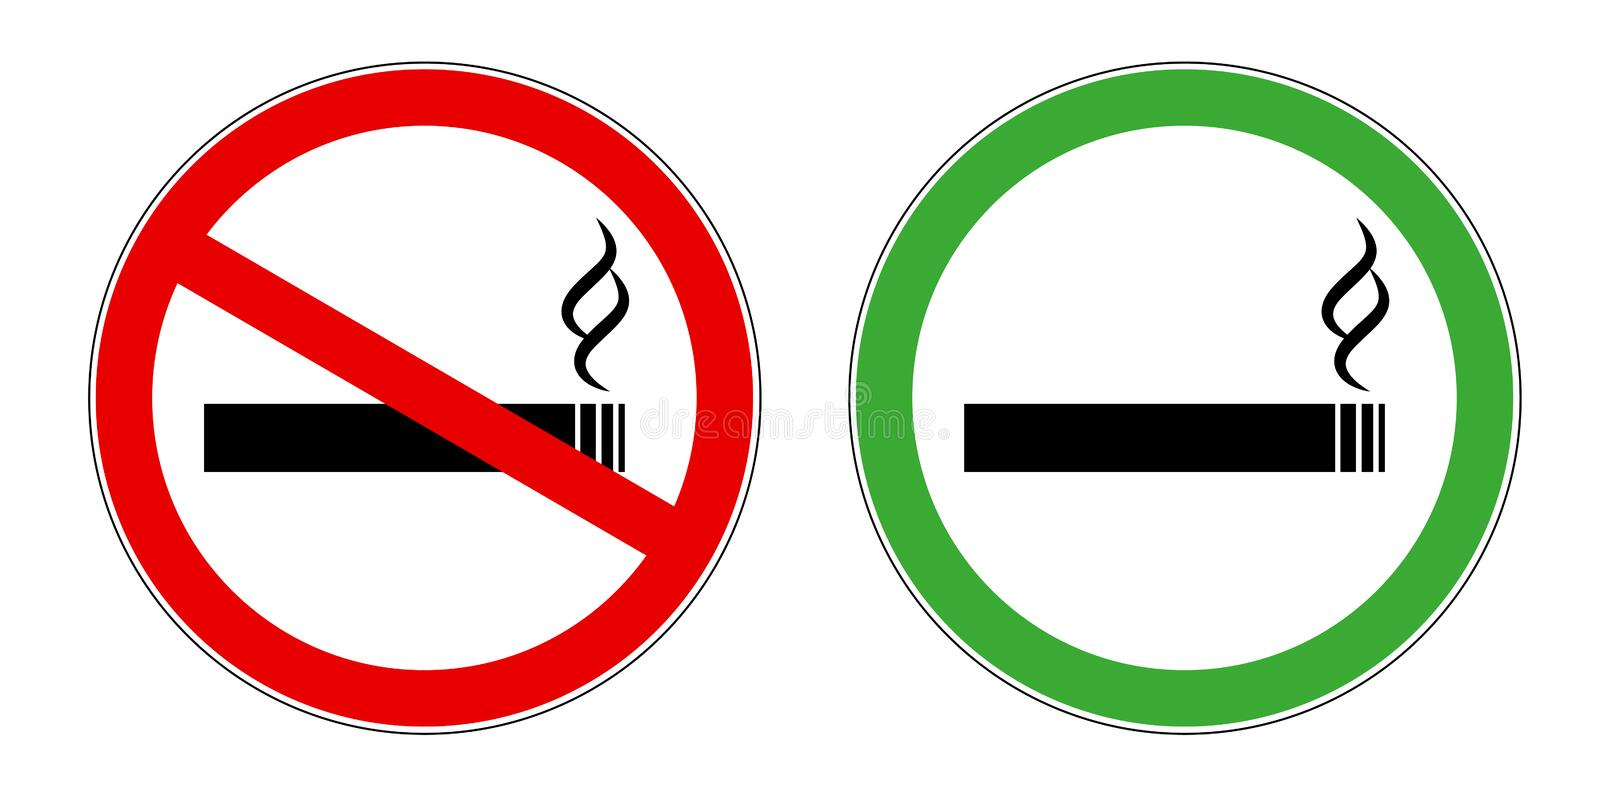 Smoking area and no smoking area red and green sign symbol for public areas allowed and forbidden royalty free illustration